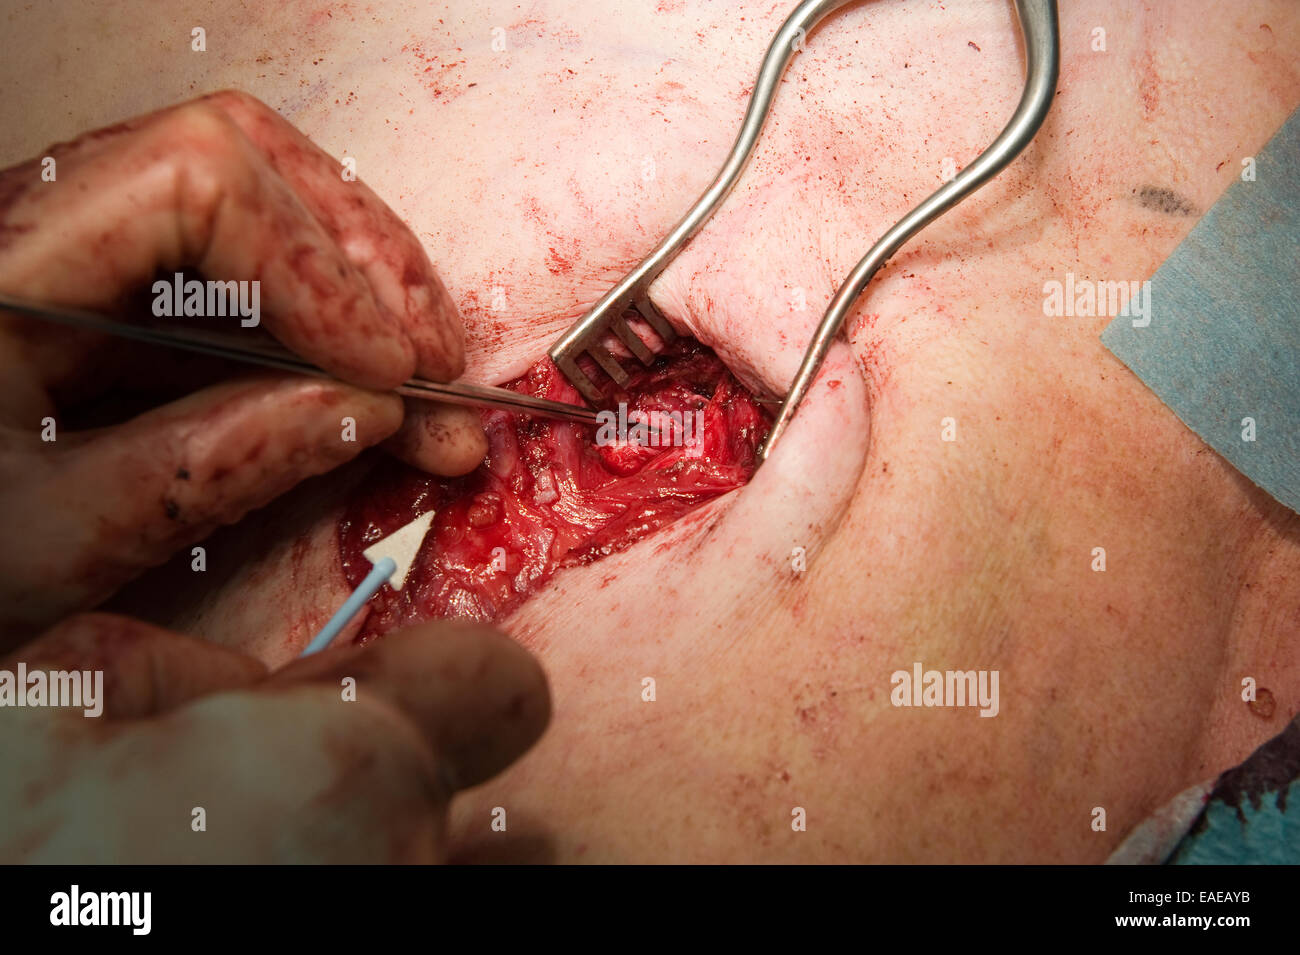 A surgeon is looking cautious for an important vain to operate - Stock Image